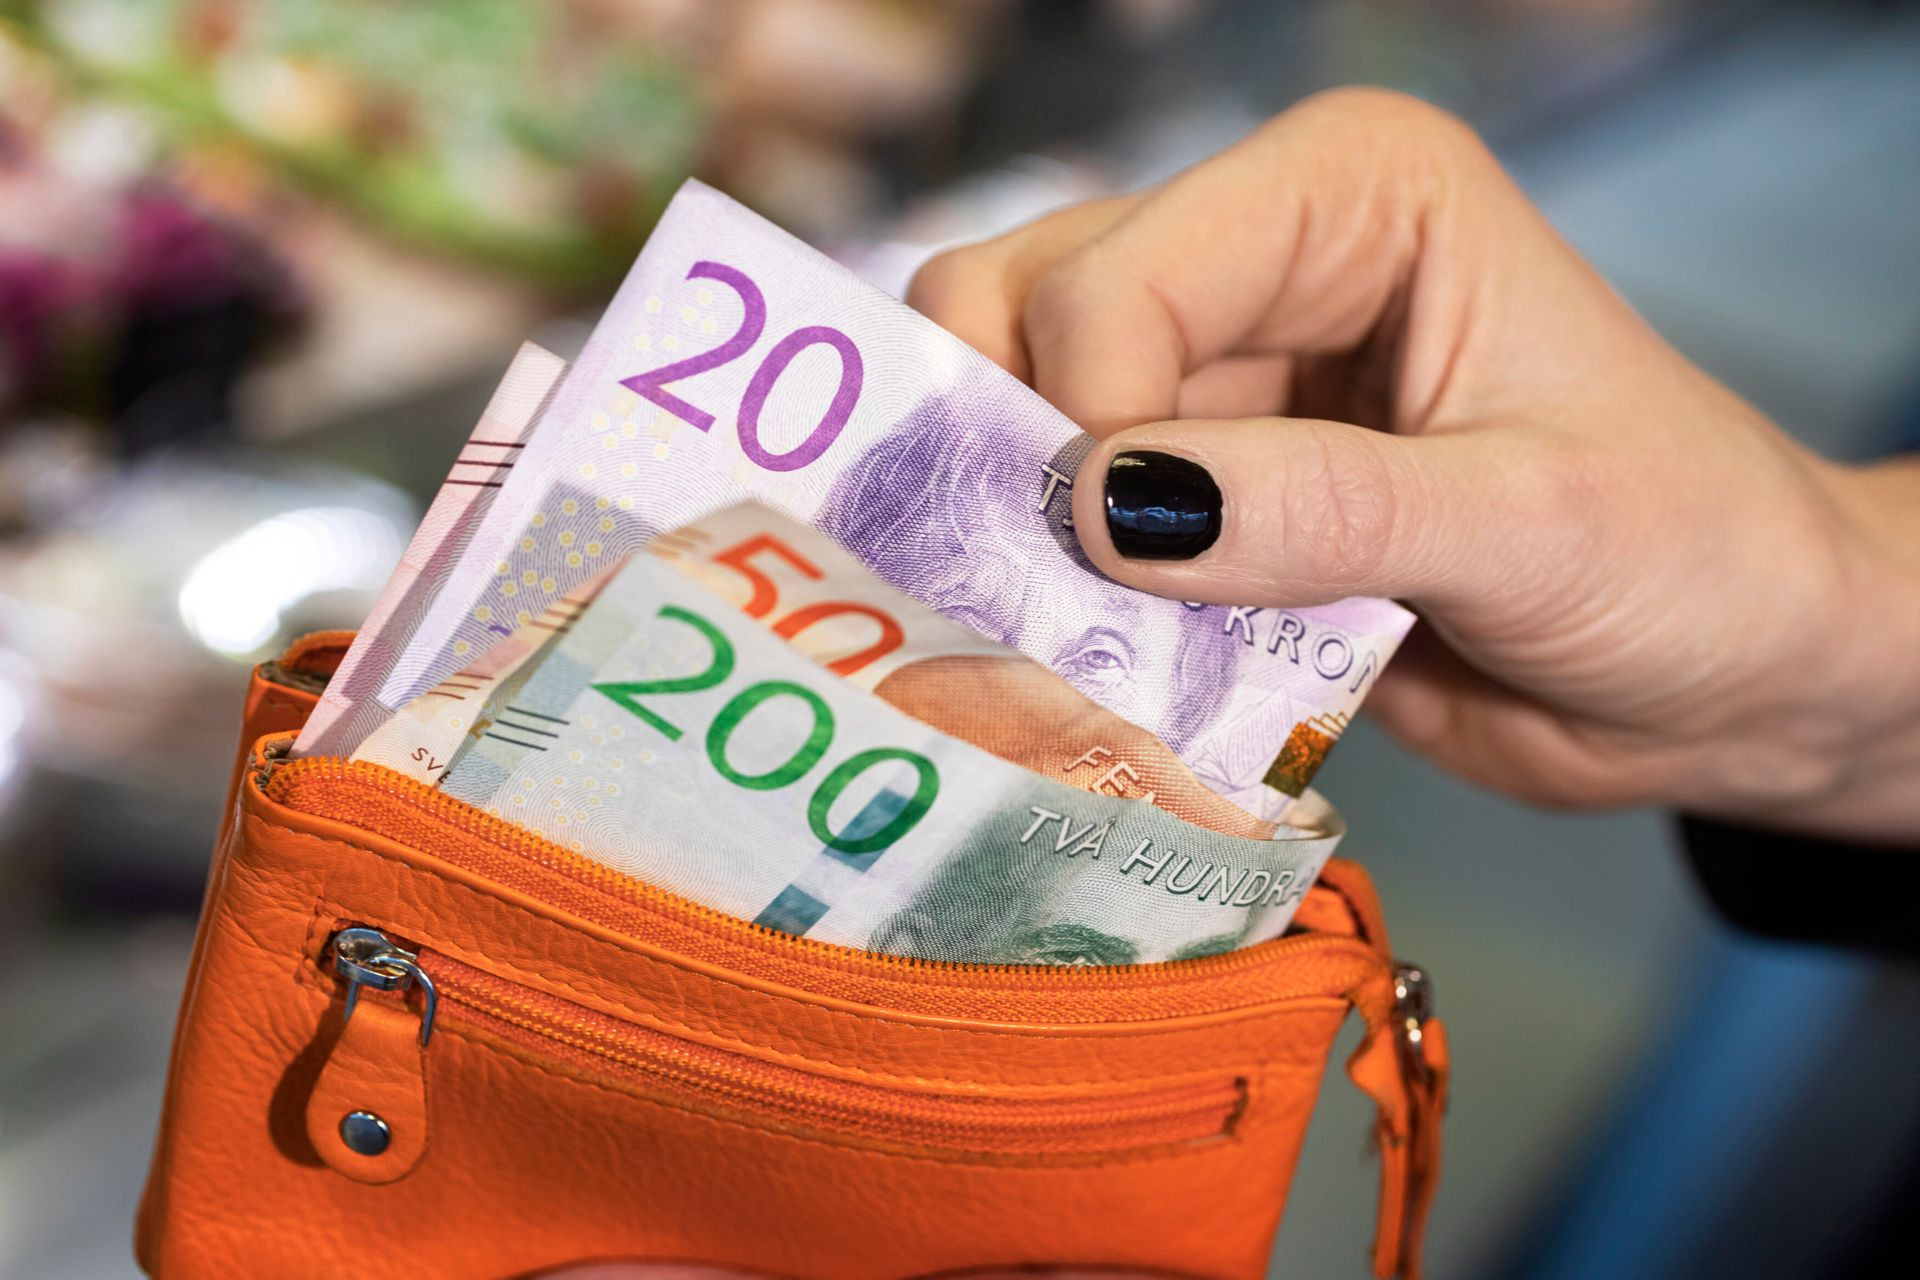 Swedish banknotes are being taken over of an orange purse.